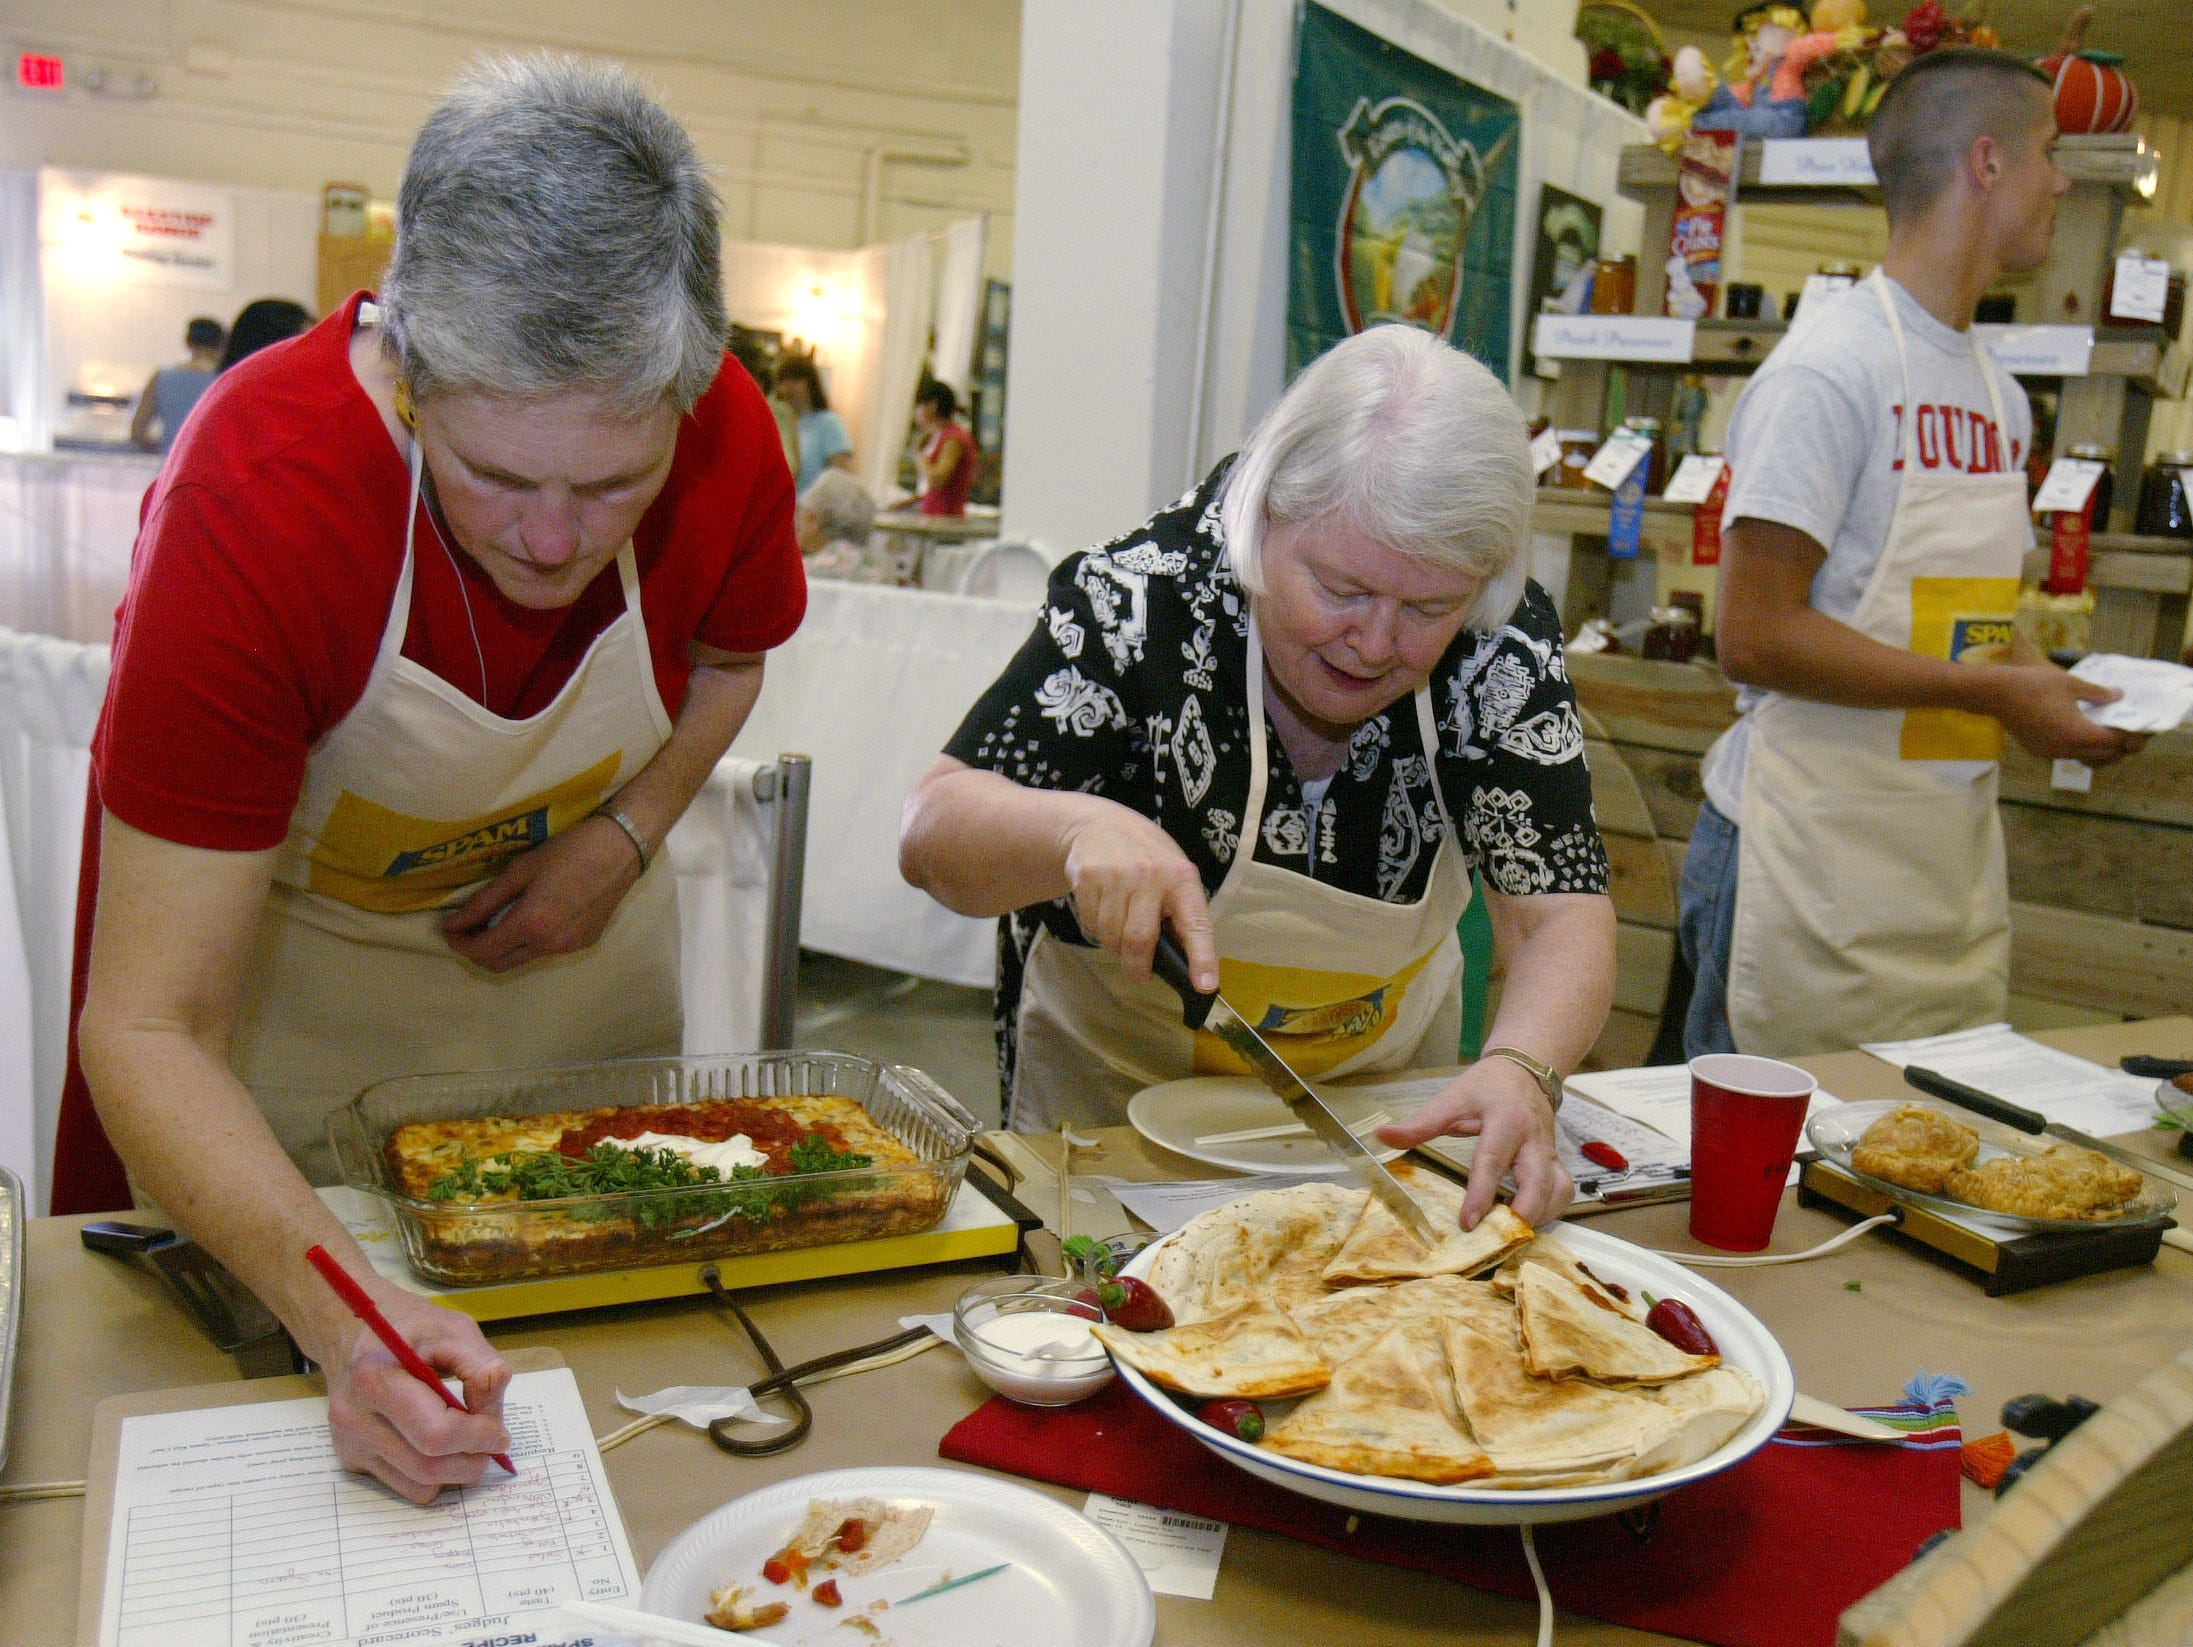 Lynda Rizzardi, left, takes notes while Etta Mae Westbrook samples Spamadillas made by David Shankles. The women were judging the Spam Kid Chef of the Year Cook-off held Sunday at the Tennessee Valley Fair in 2005.